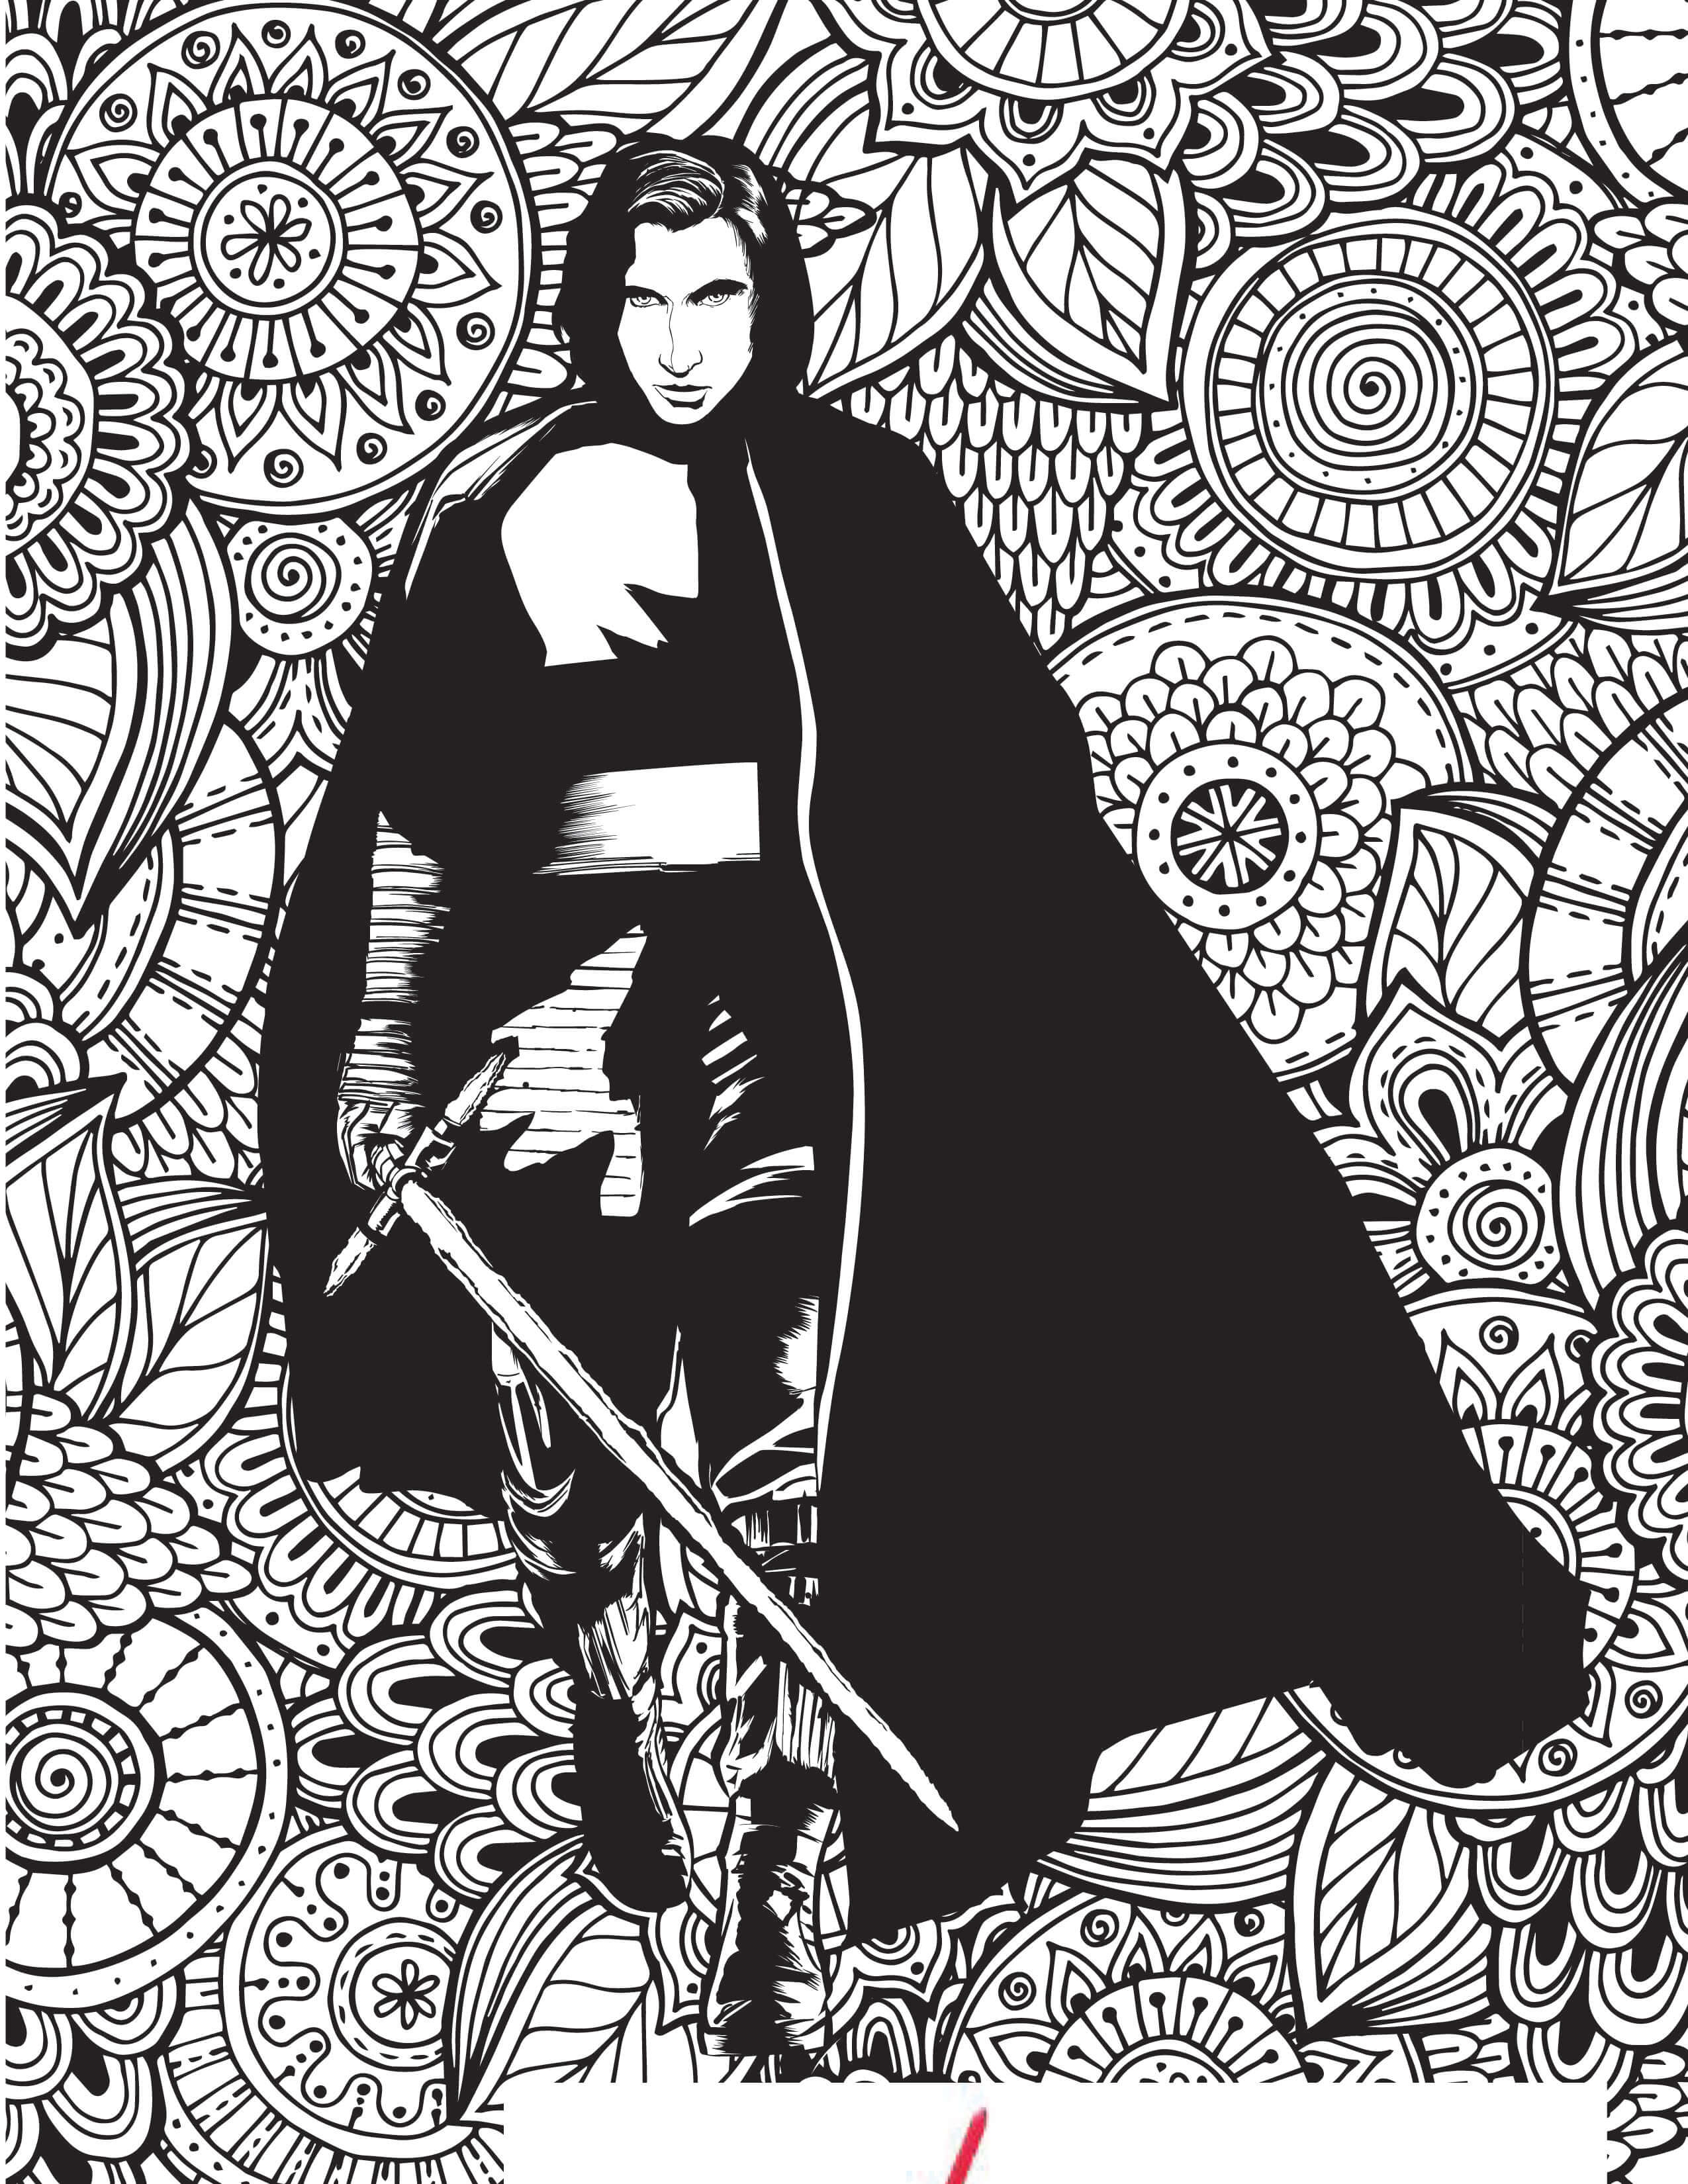 Kylo Ren Coloring Page Kylo Ren Coloring Pages Free Star Wars Costume Supercenter Blog 2550